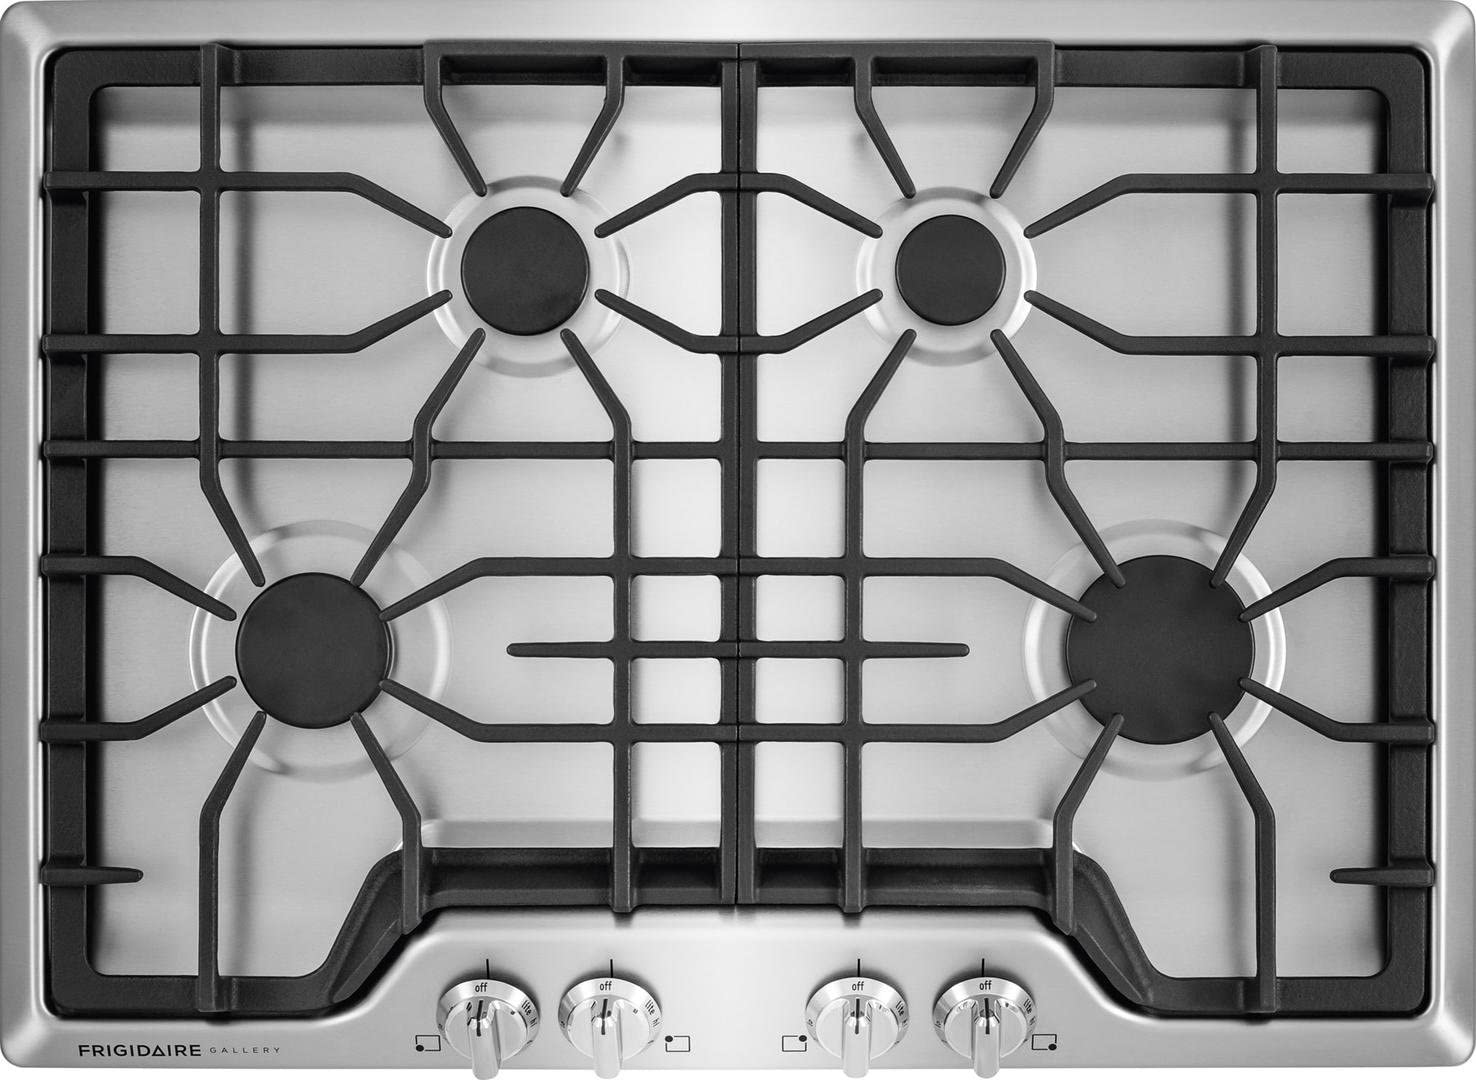 "30"" Sealed Burner Style Cooktop with 4 Burners in Stainless Steel 71DpS70uiMLSL1476_"